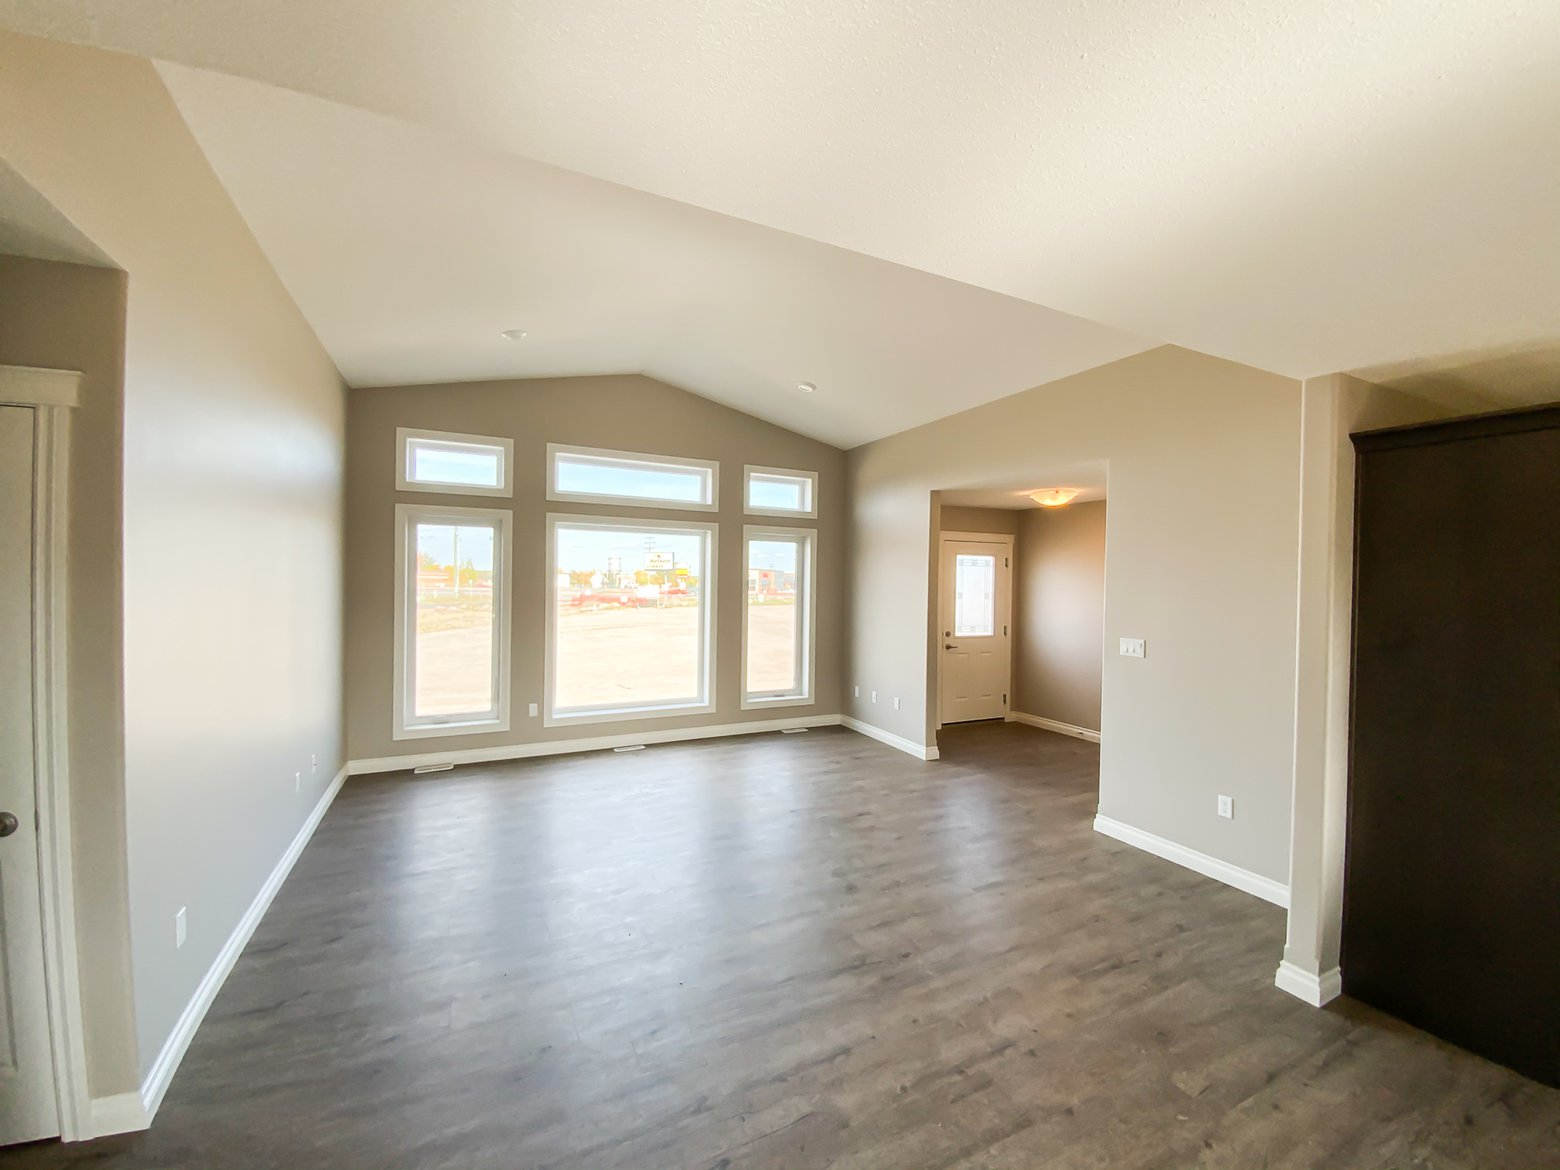 large windows in living room.jpg